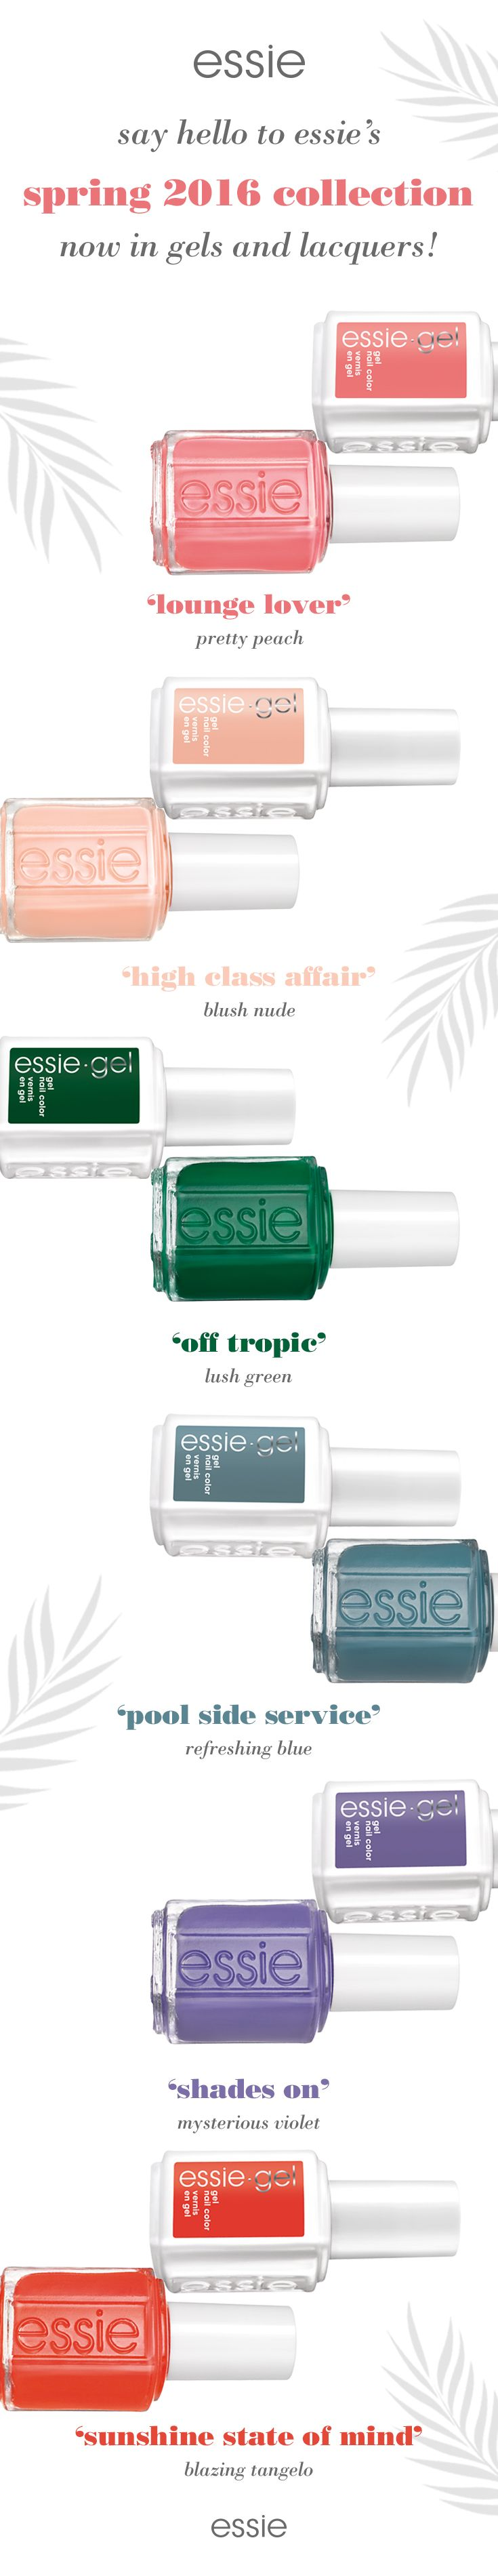 Say hello to essie's Spring 2016 collection -- this bold and bright collection is now in gels and lacquers!